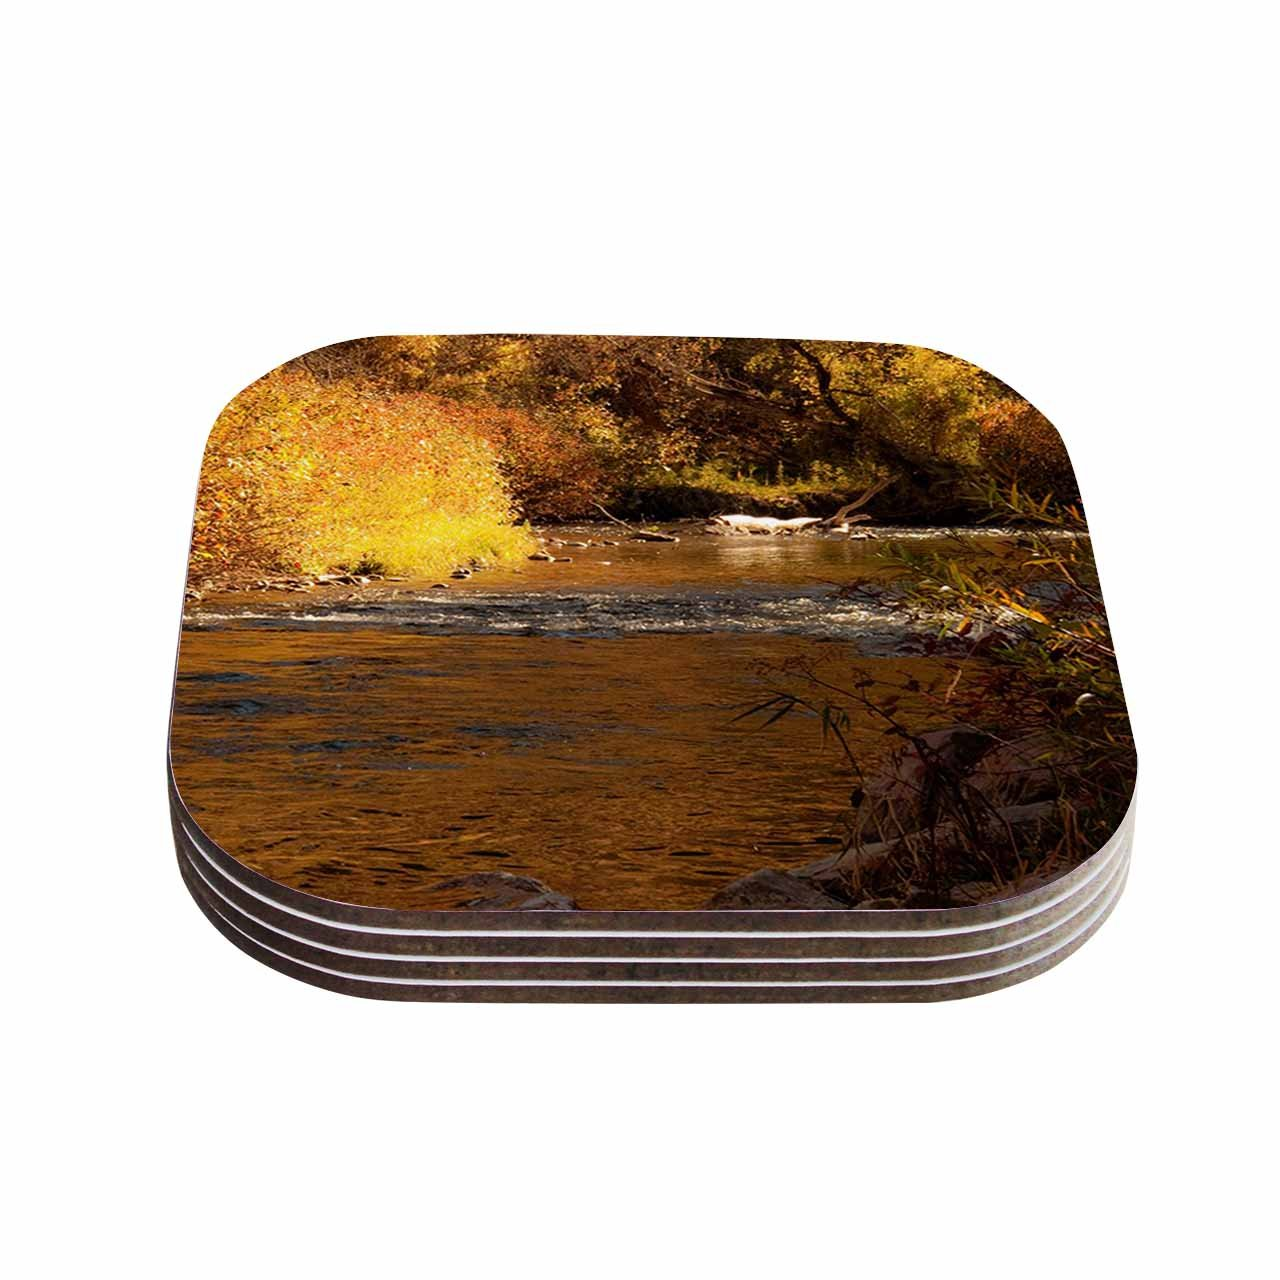 KESS InHouse Sylvia Coomes'Autumn Stream Brown Yellow' Coasters (Set of 4), 4 x 4', Multicolor